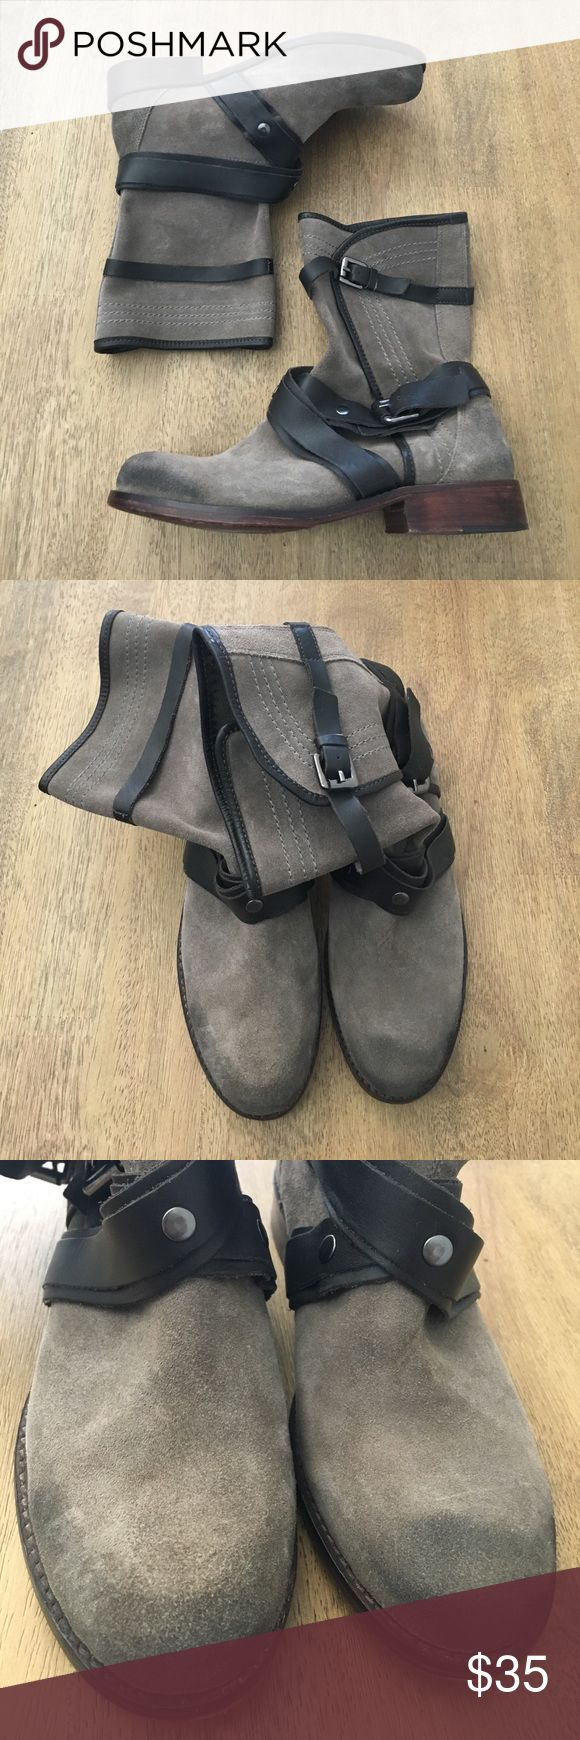 Jon Josef Slouchy Rustic Leather Suede Boots 7 In great condition, minor wear, slouchy boots. Strappy details, slip on style, wooden heel. Size 7.     ❌No try ons ❌No trades ⚜️Please send offers through the offer option! Anthropologie Shoes Ankle Boots & Booties